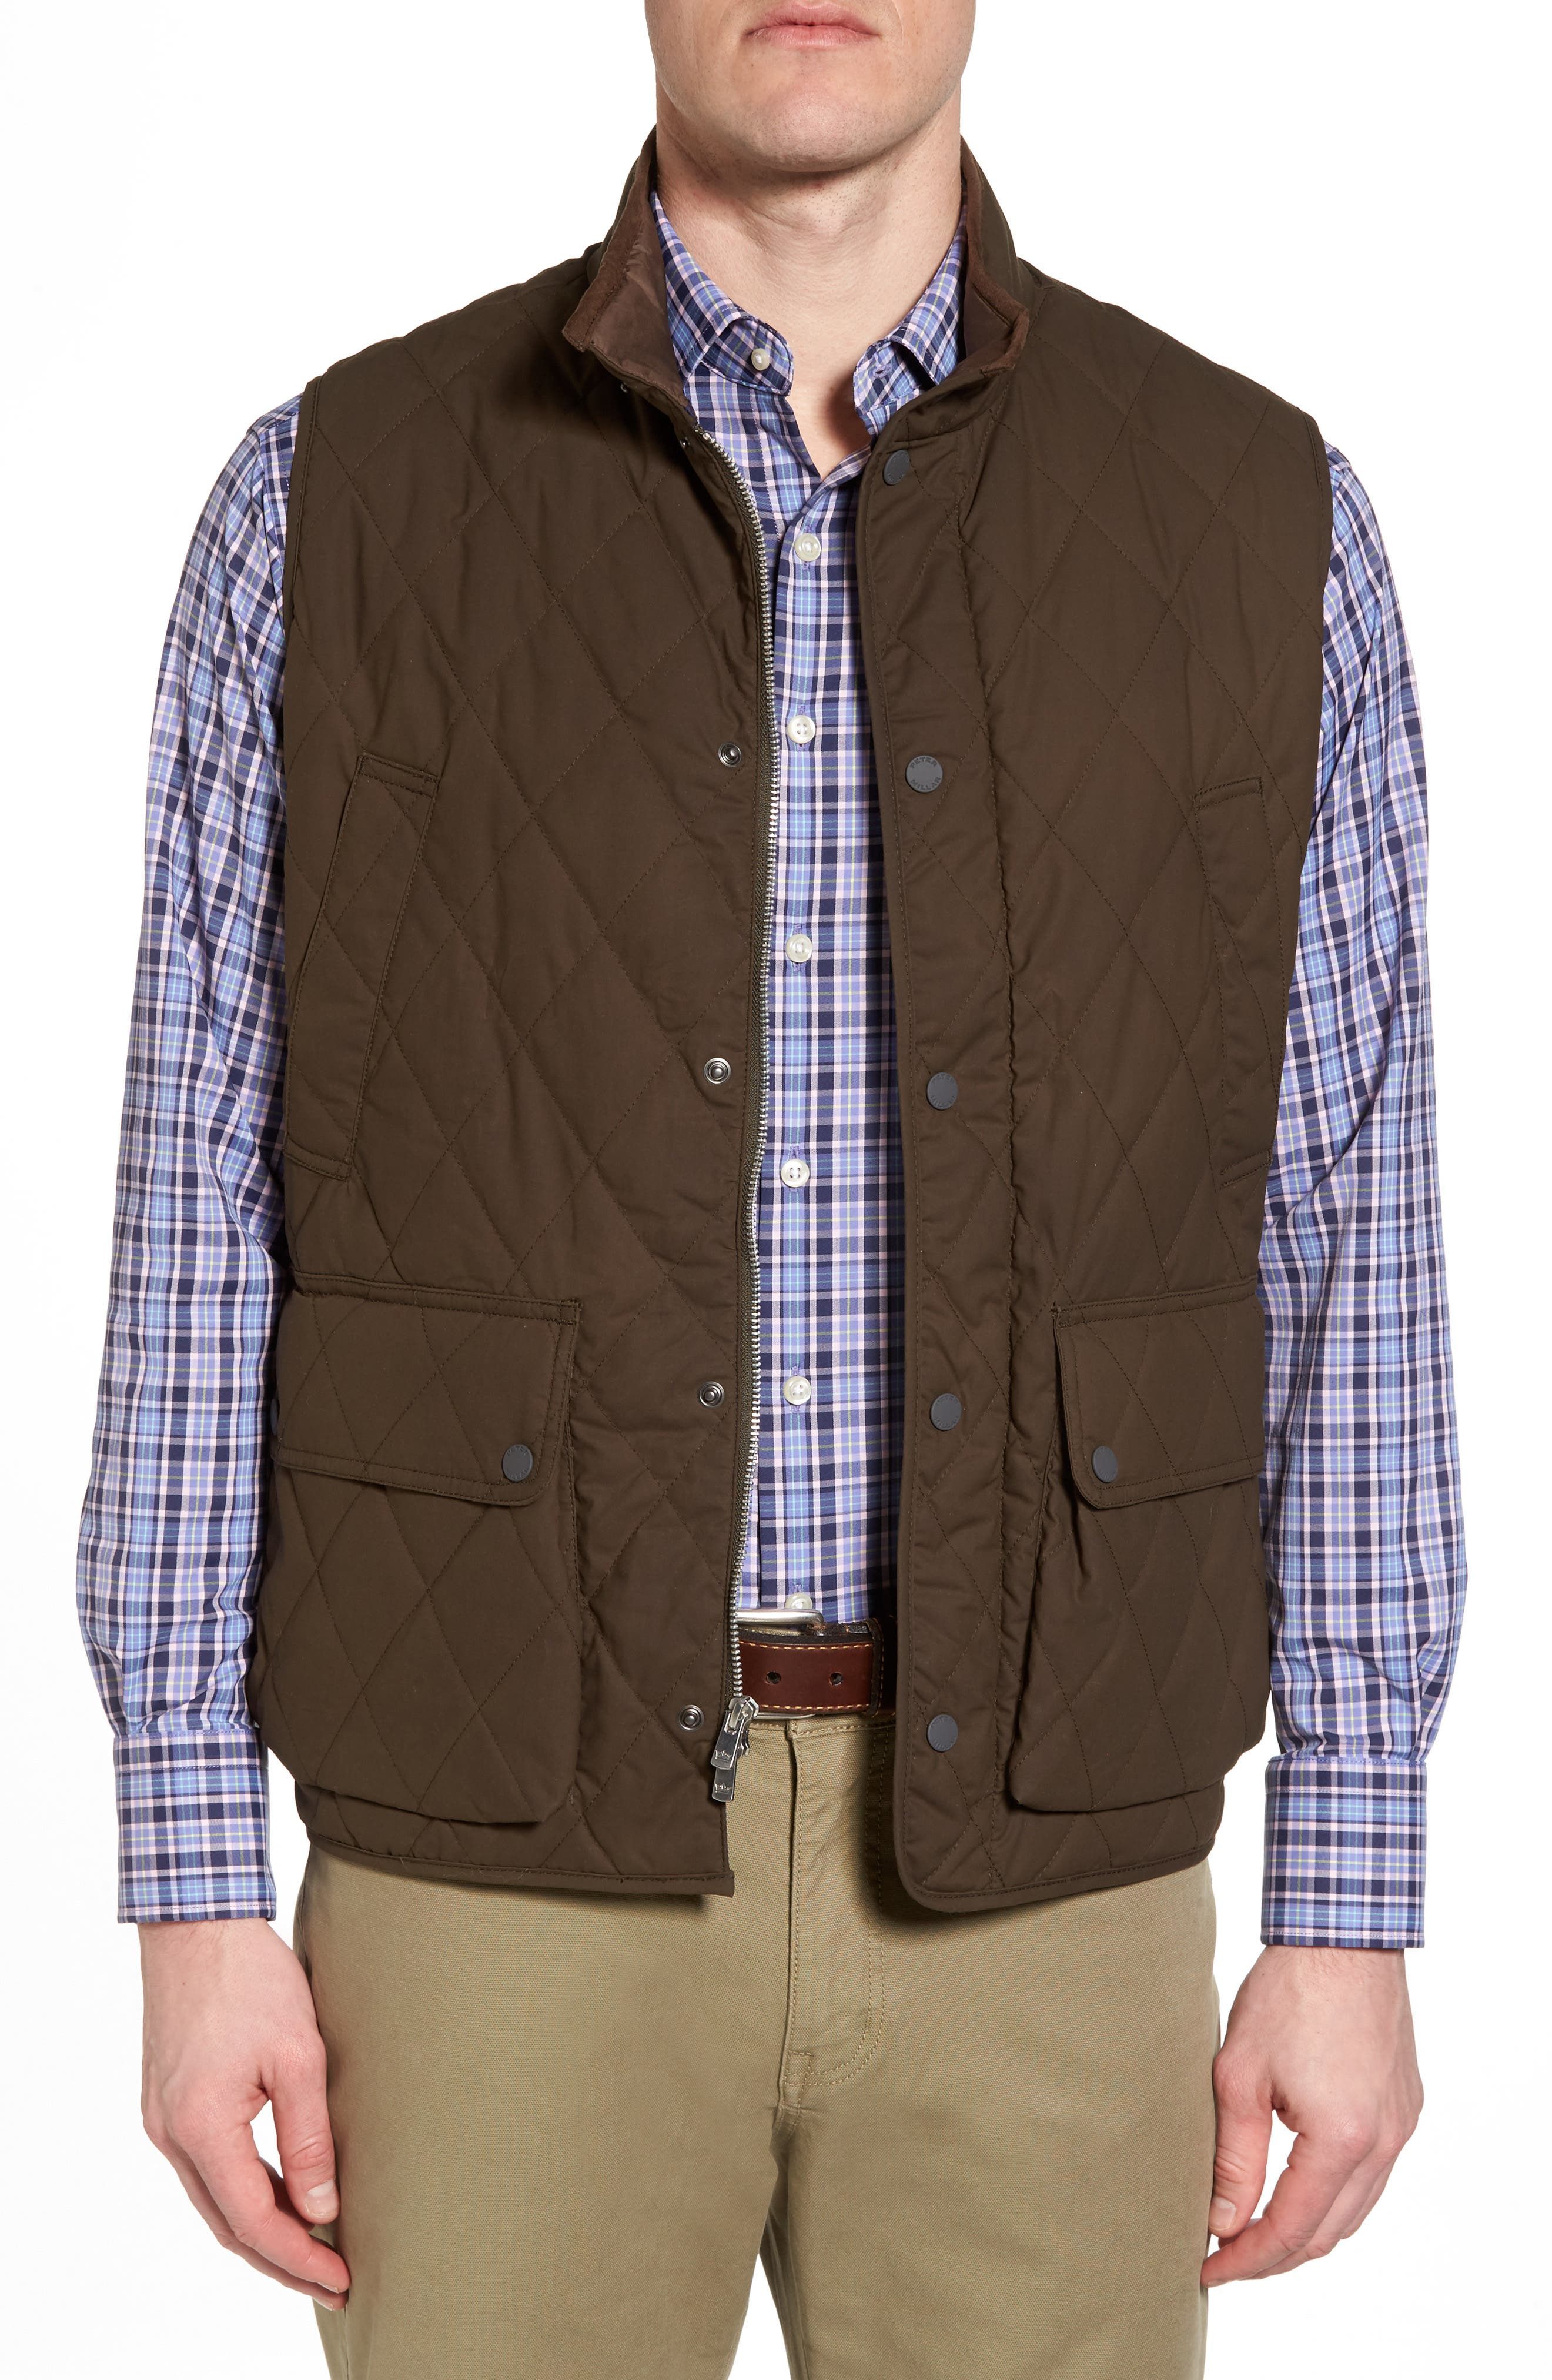 Keswick Waxed Cotton Quilted Vest,                         Main,                         color, Dark Military